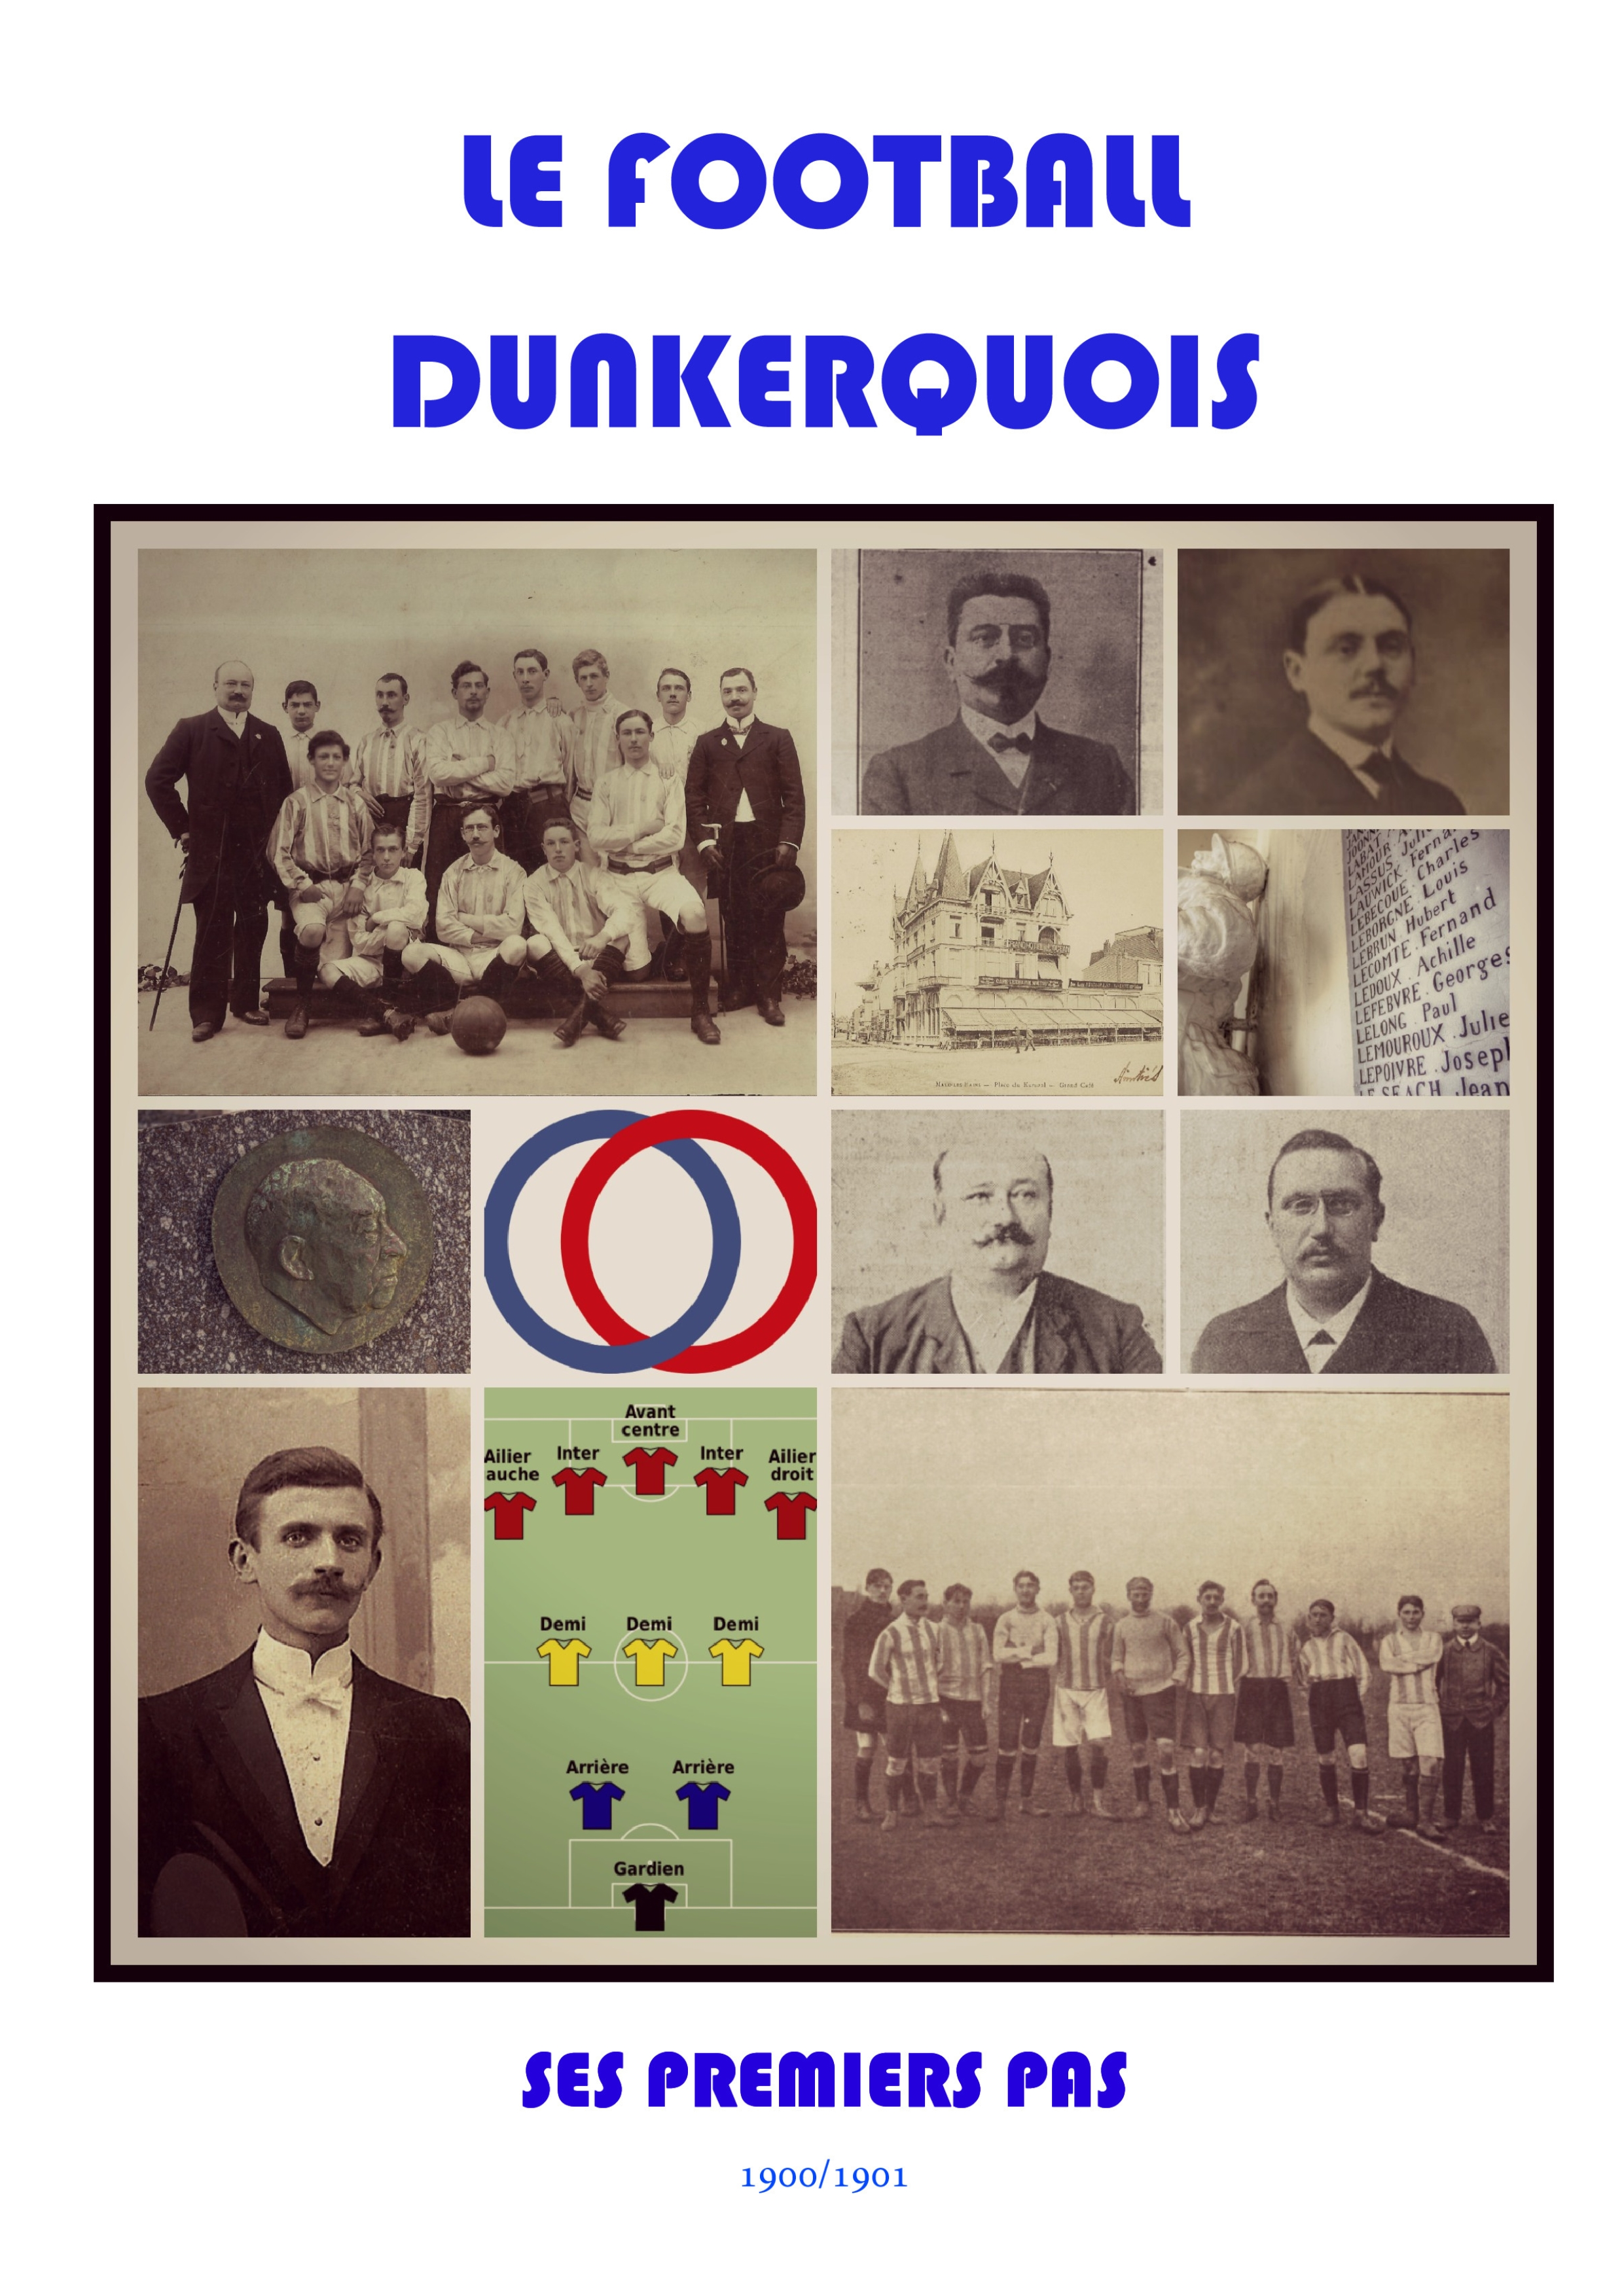 LE FOOTBALL DUNKERQUOIS (1900/01)